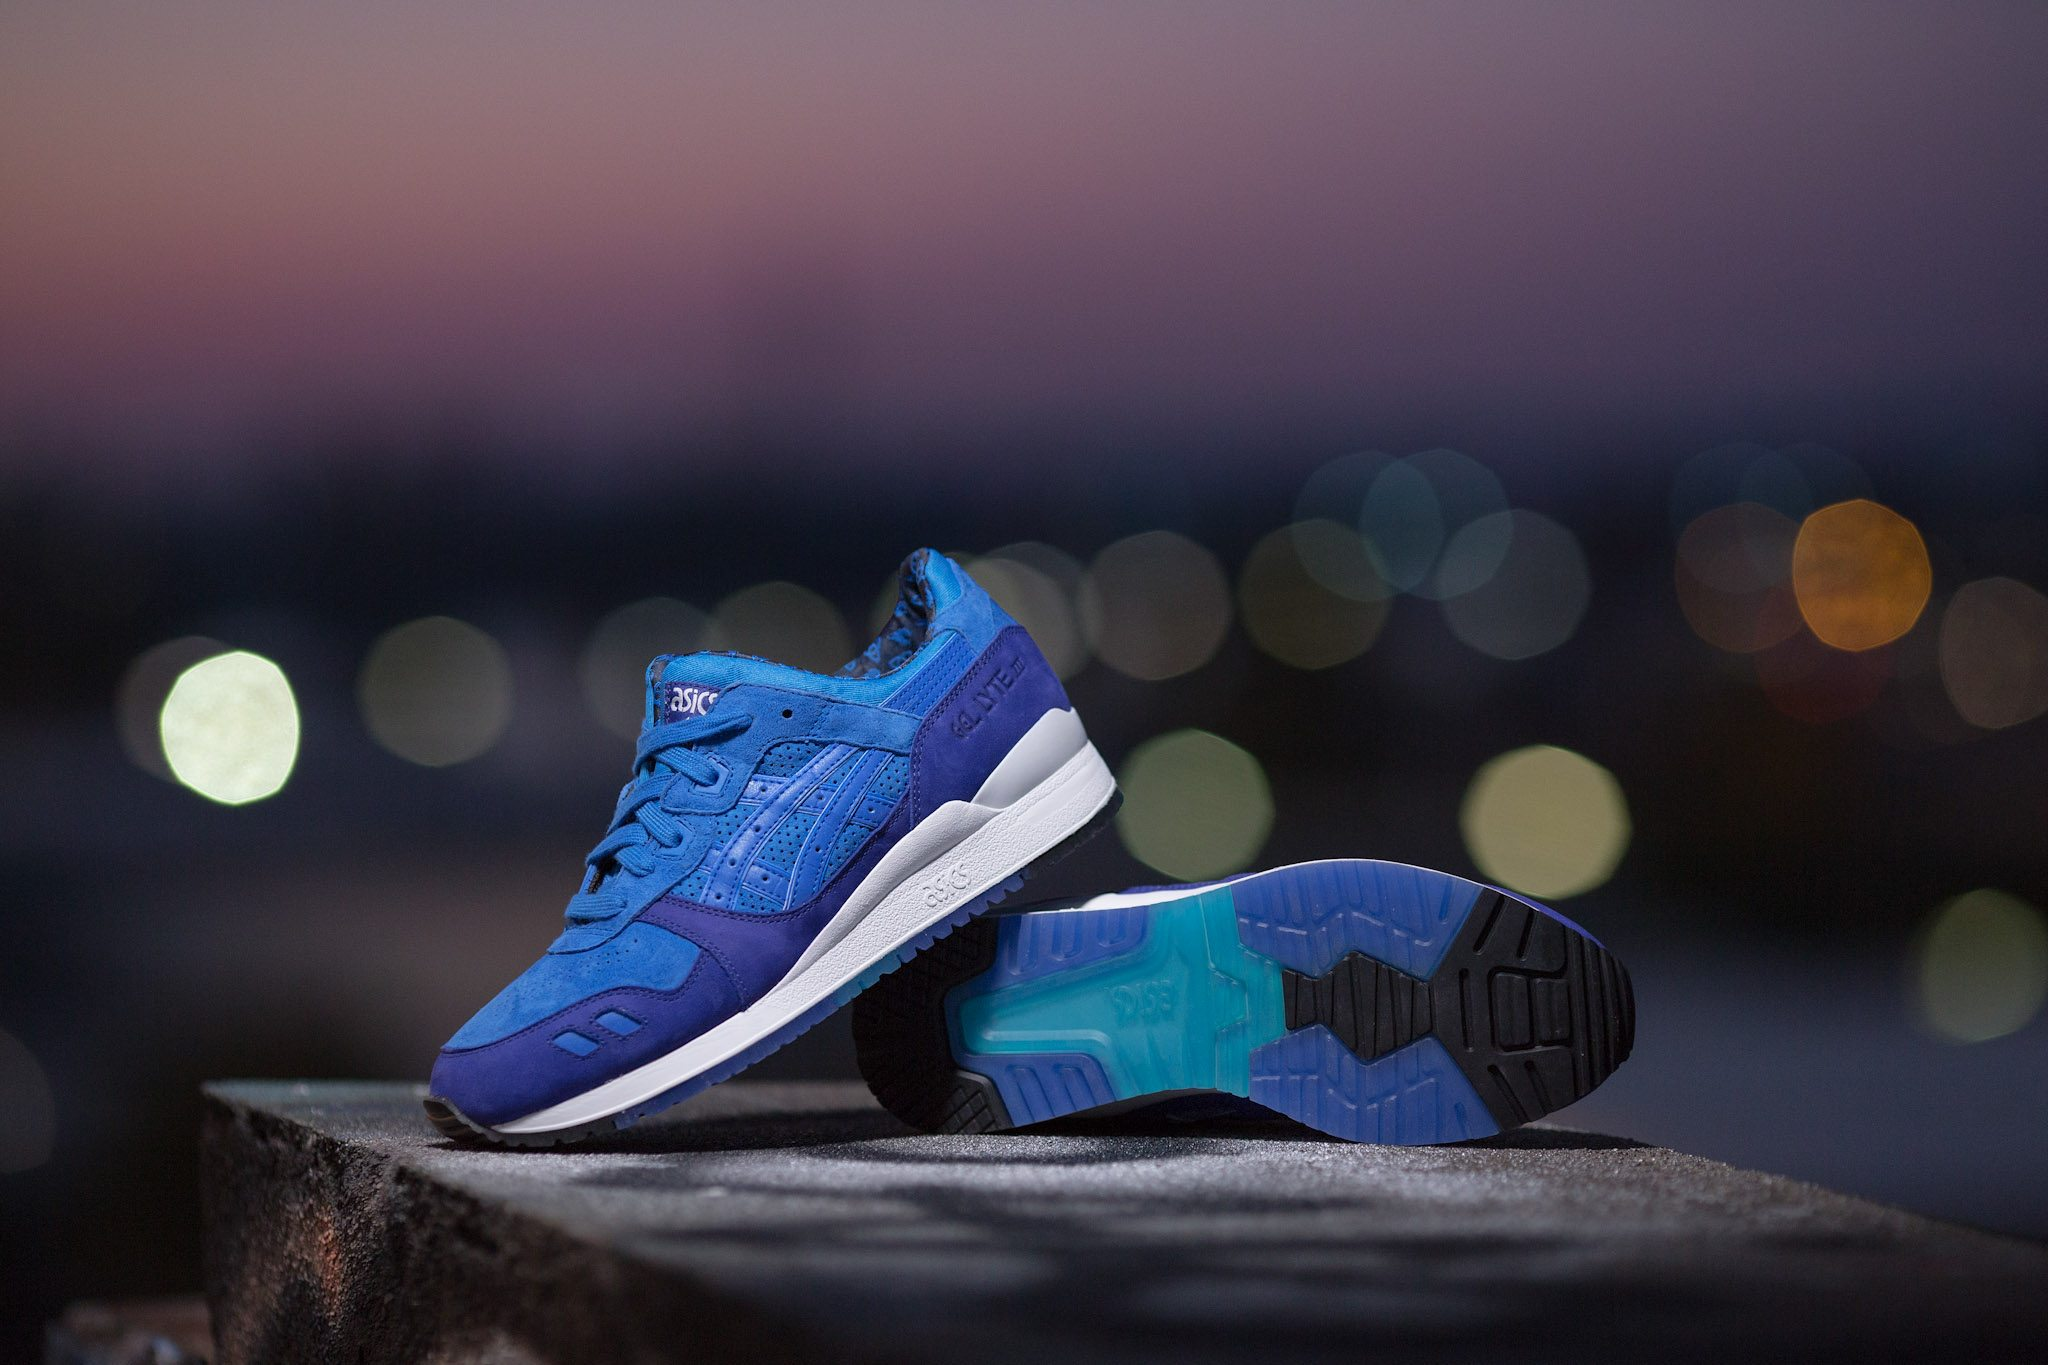 HANON x ASICS Gel Lyte III Light Night 8